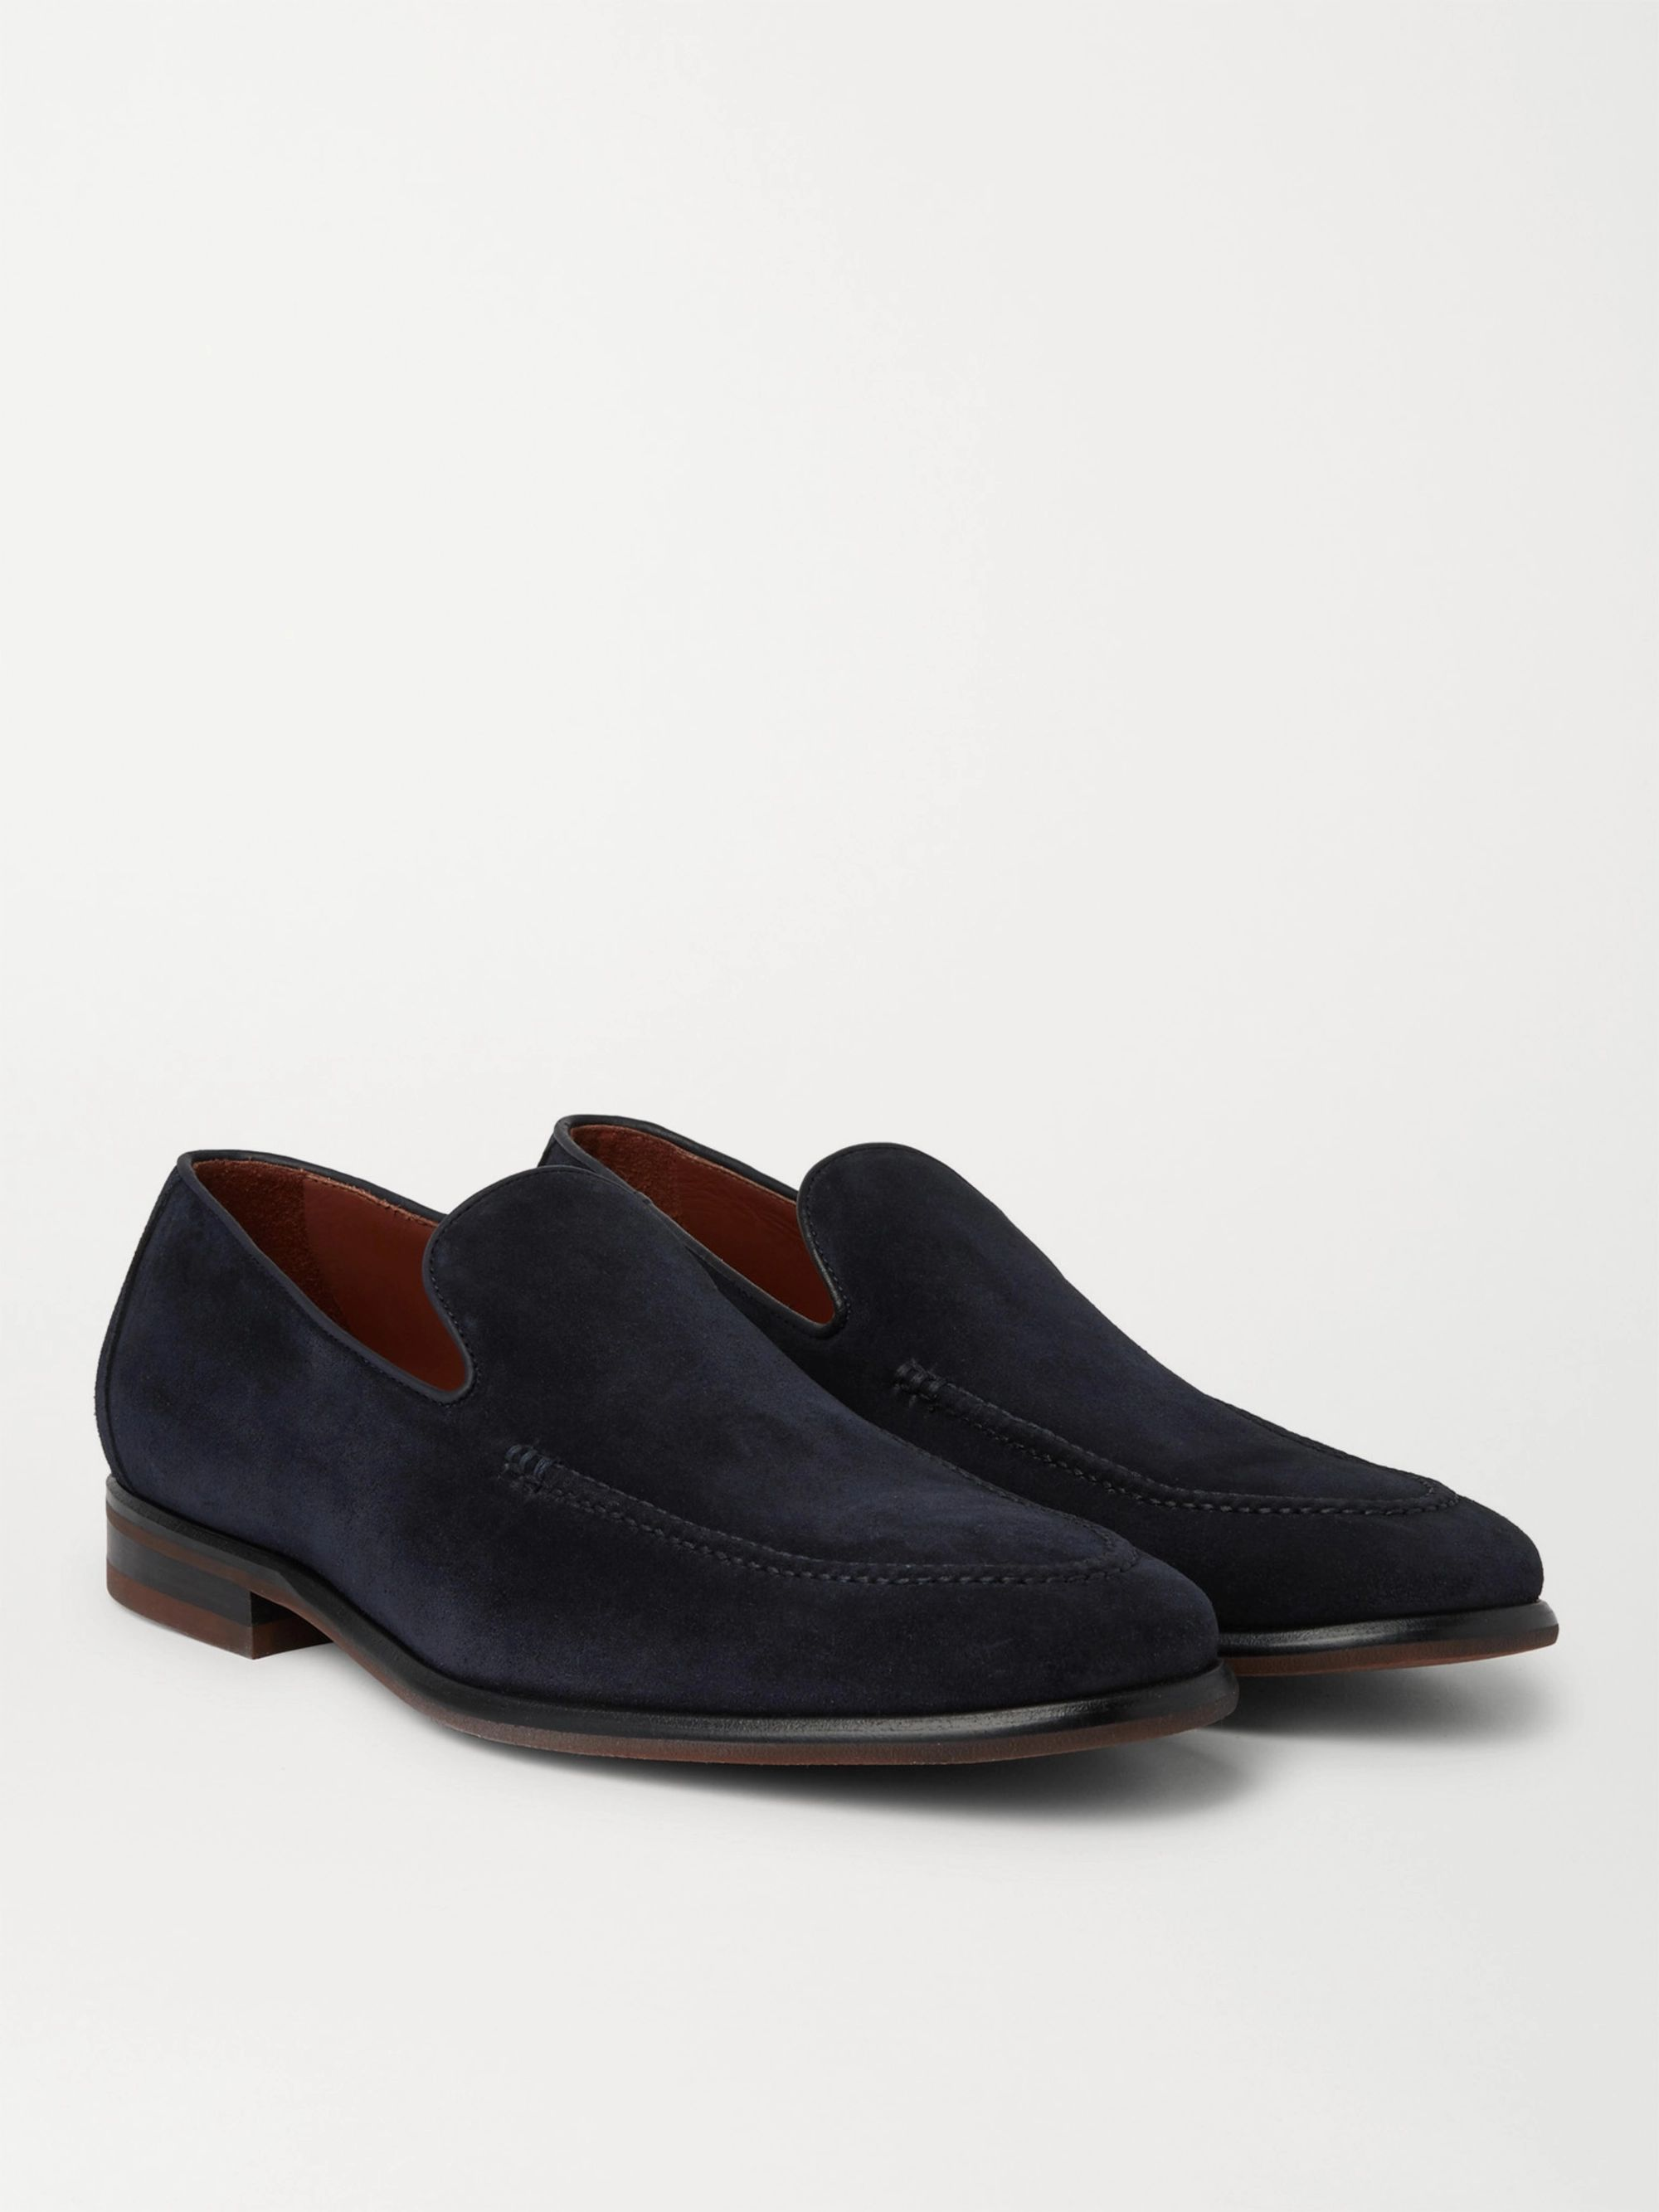 Loro Piana City Suede Loafers